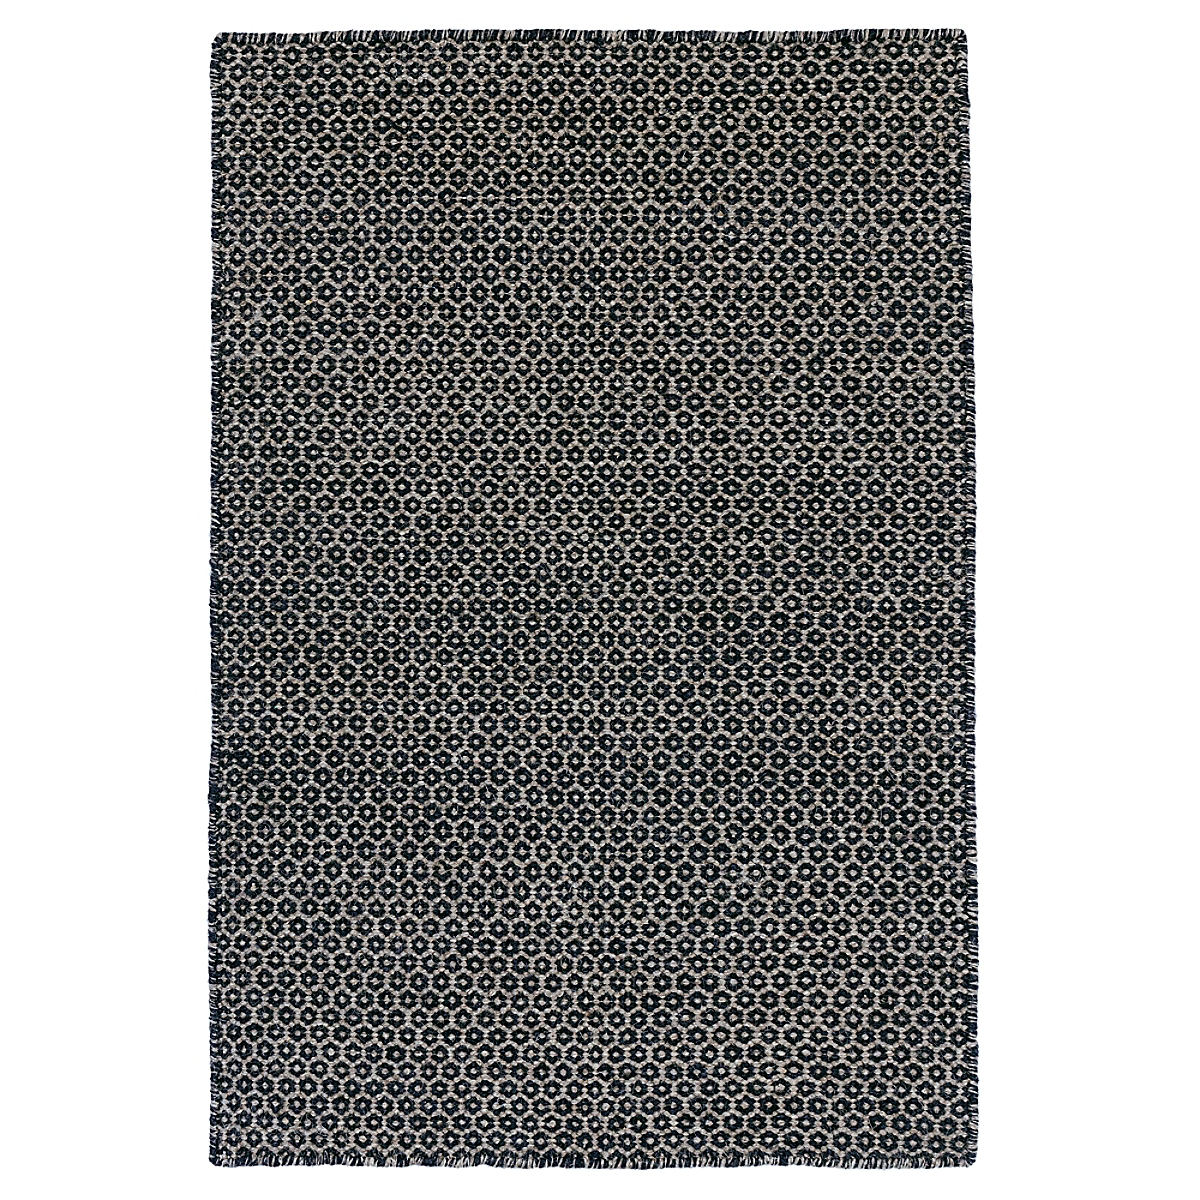 Honeycomb Indigo Grey Wool Woven Rug